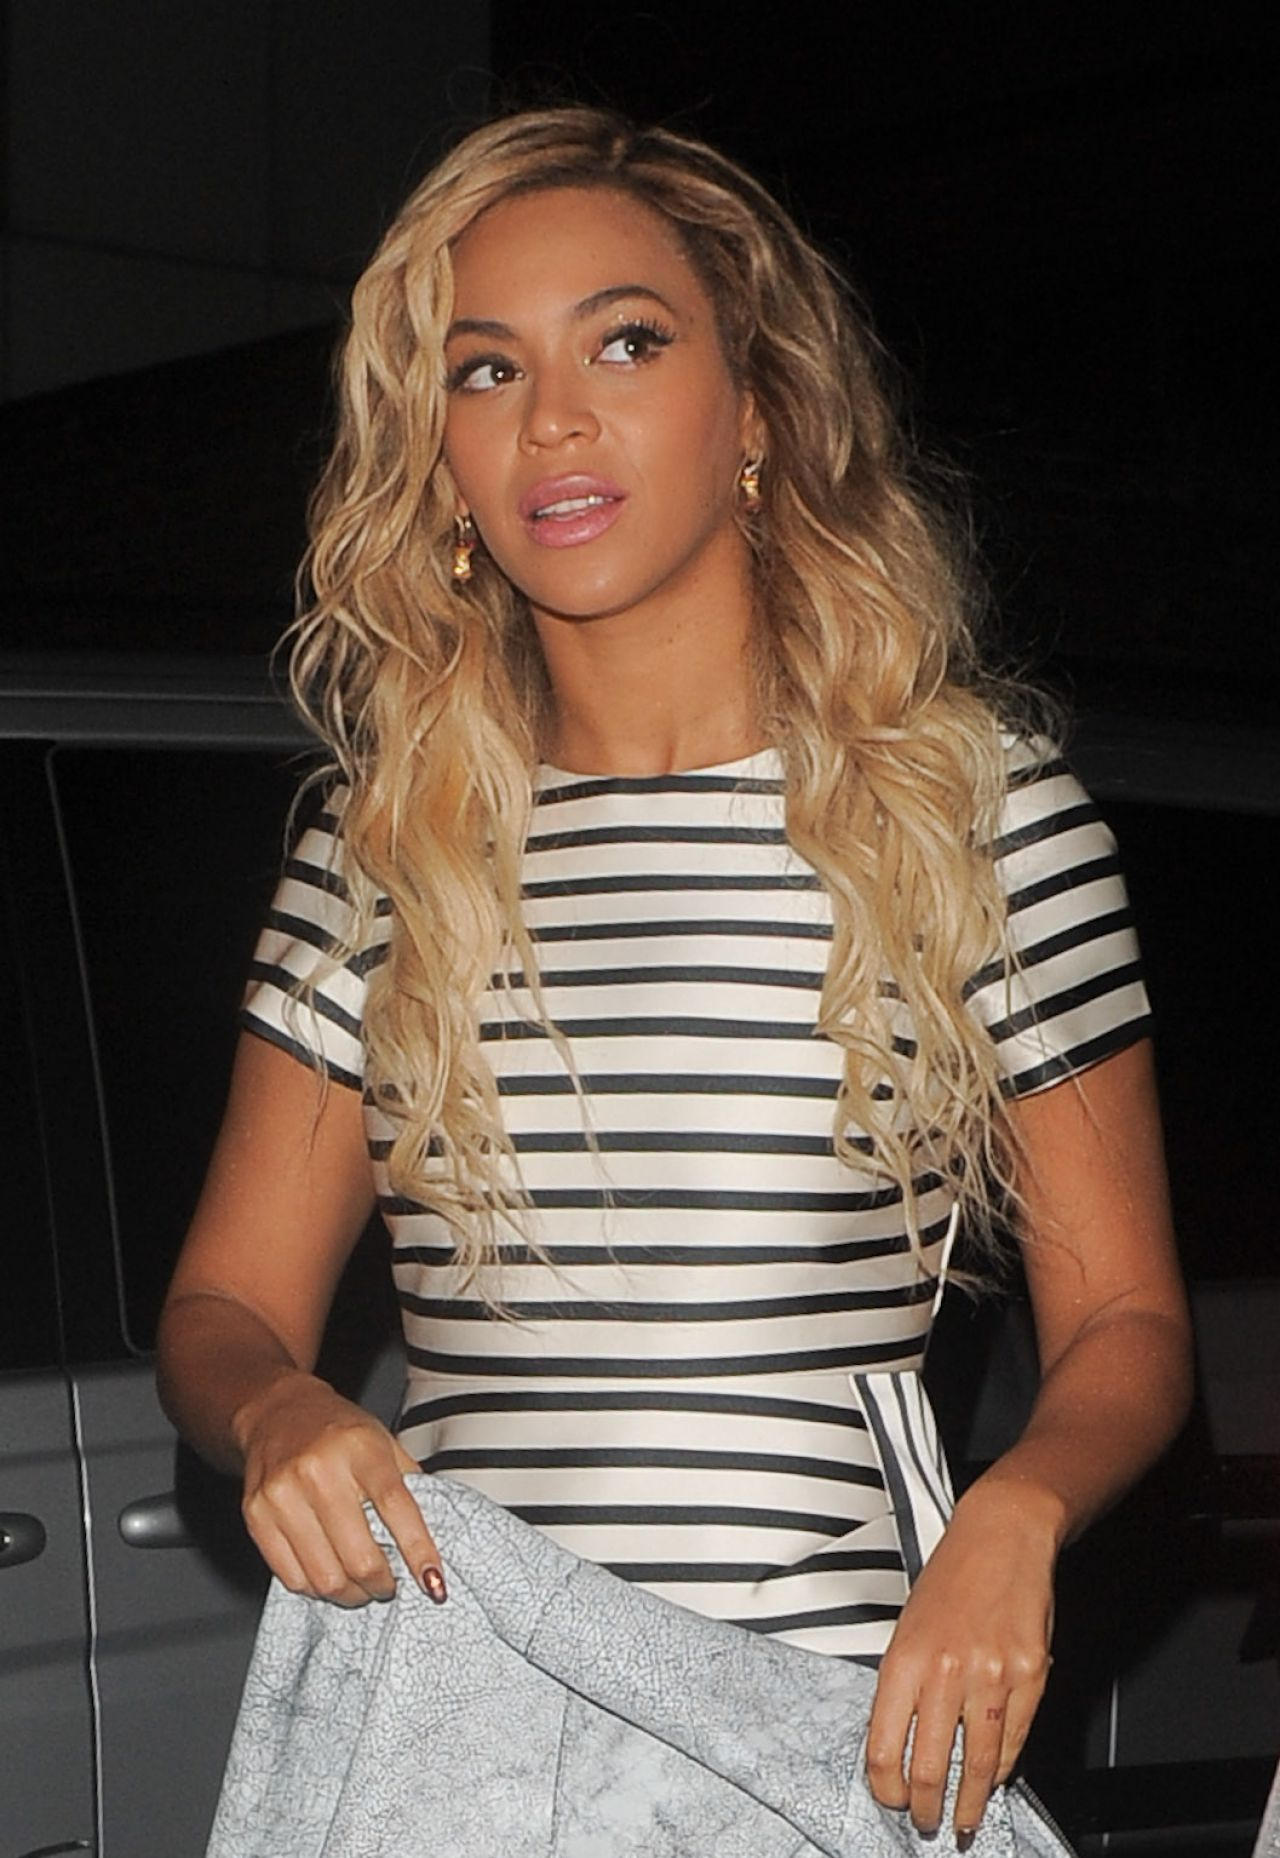 Beyonce Night Out Style - The Arts Club in Mayfair